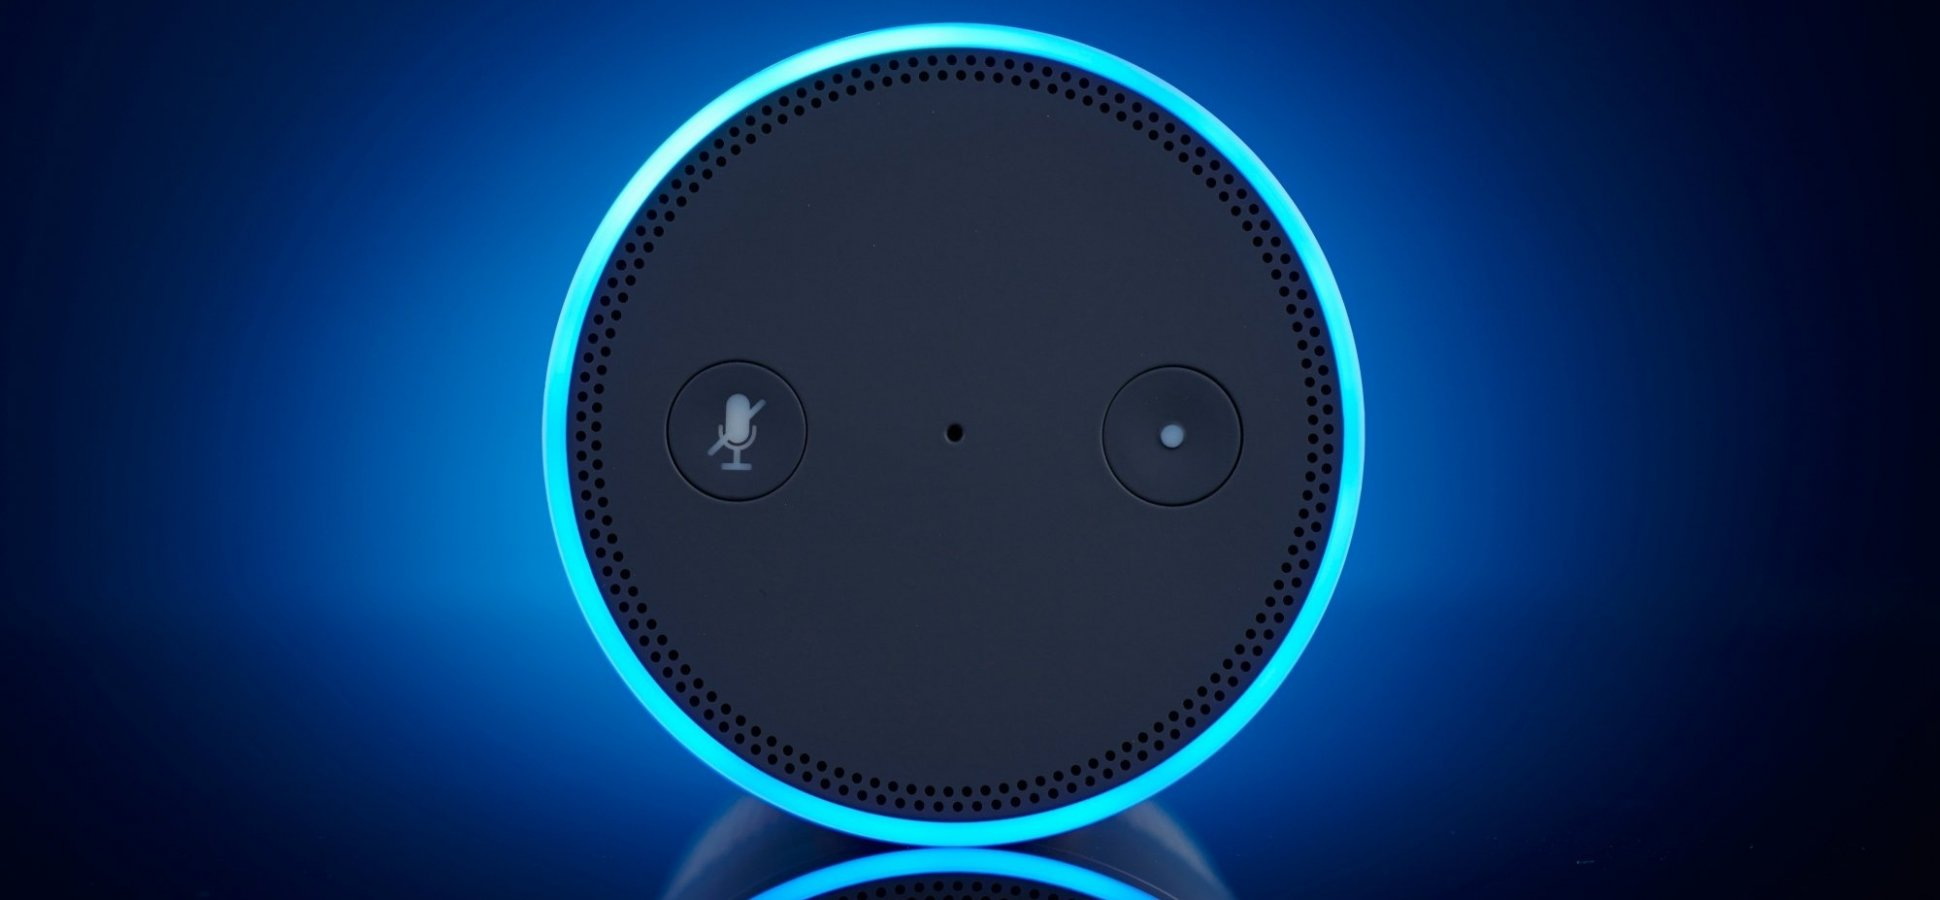 Here's How to Stop 'Human Review' of Your Alexa Interactions. (Apple and Google Too)